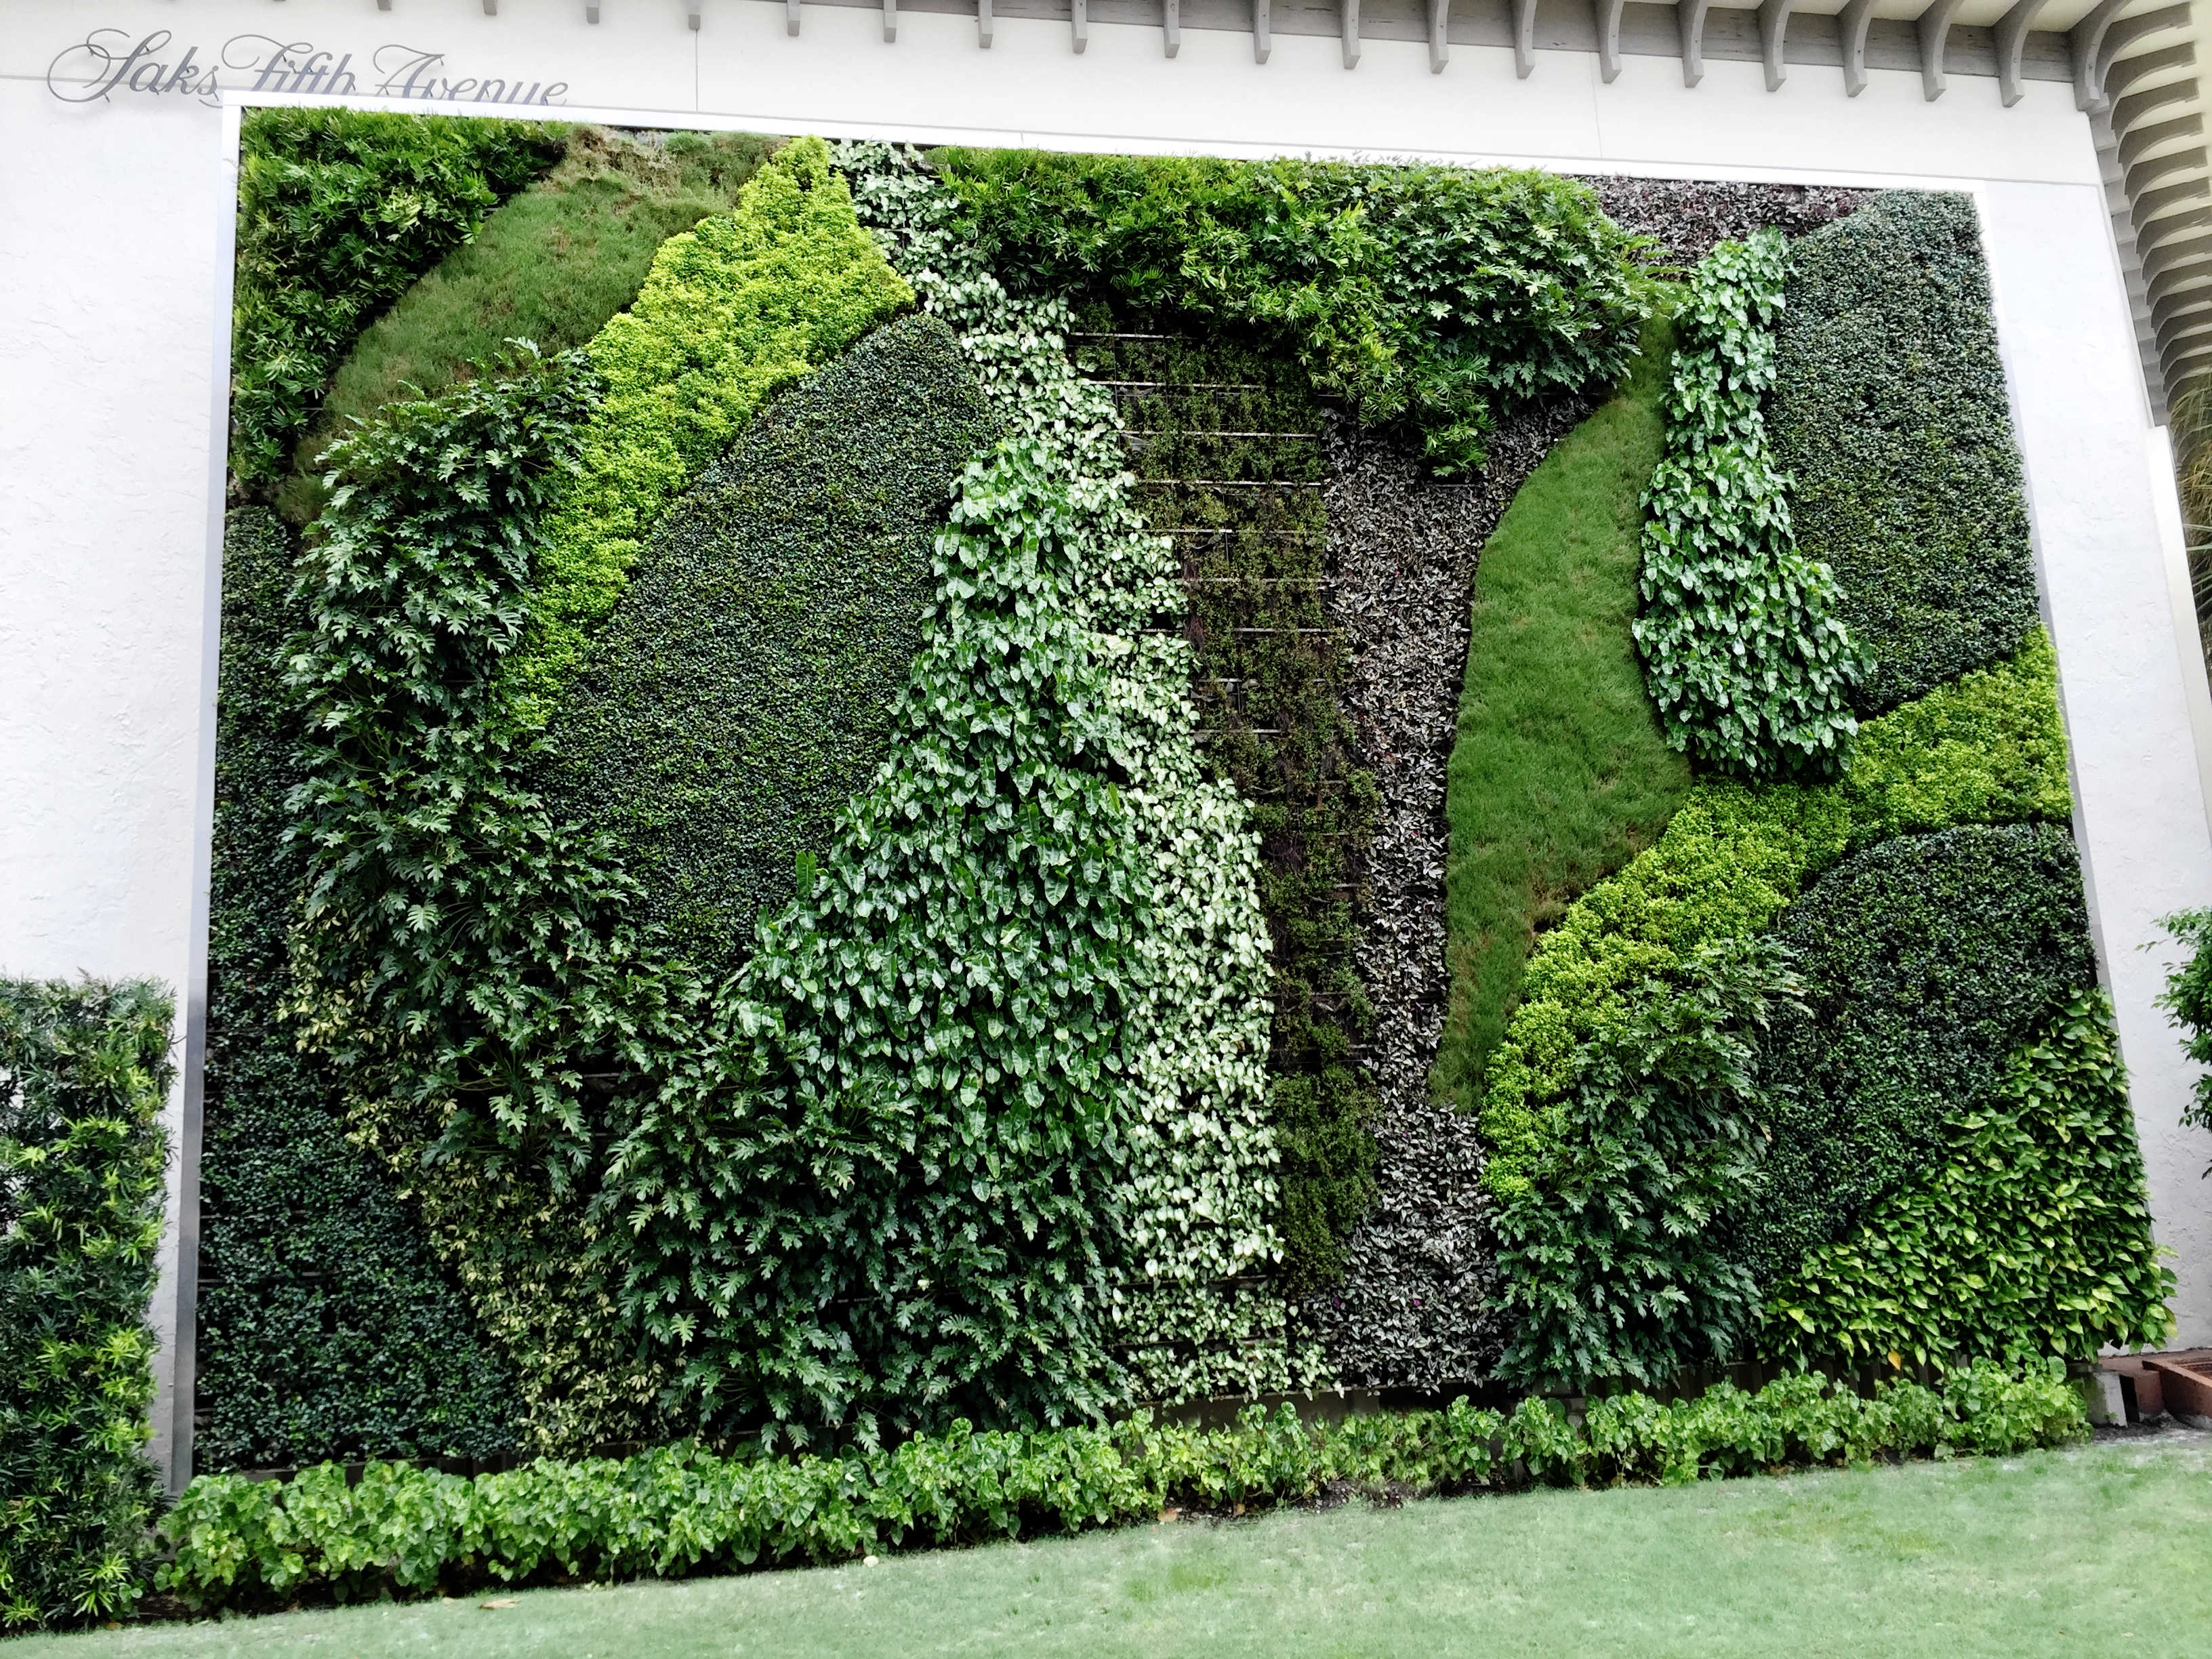 Green Wall - Saks Fifth Ave - Worth Ave - High end Retail Landscape Design